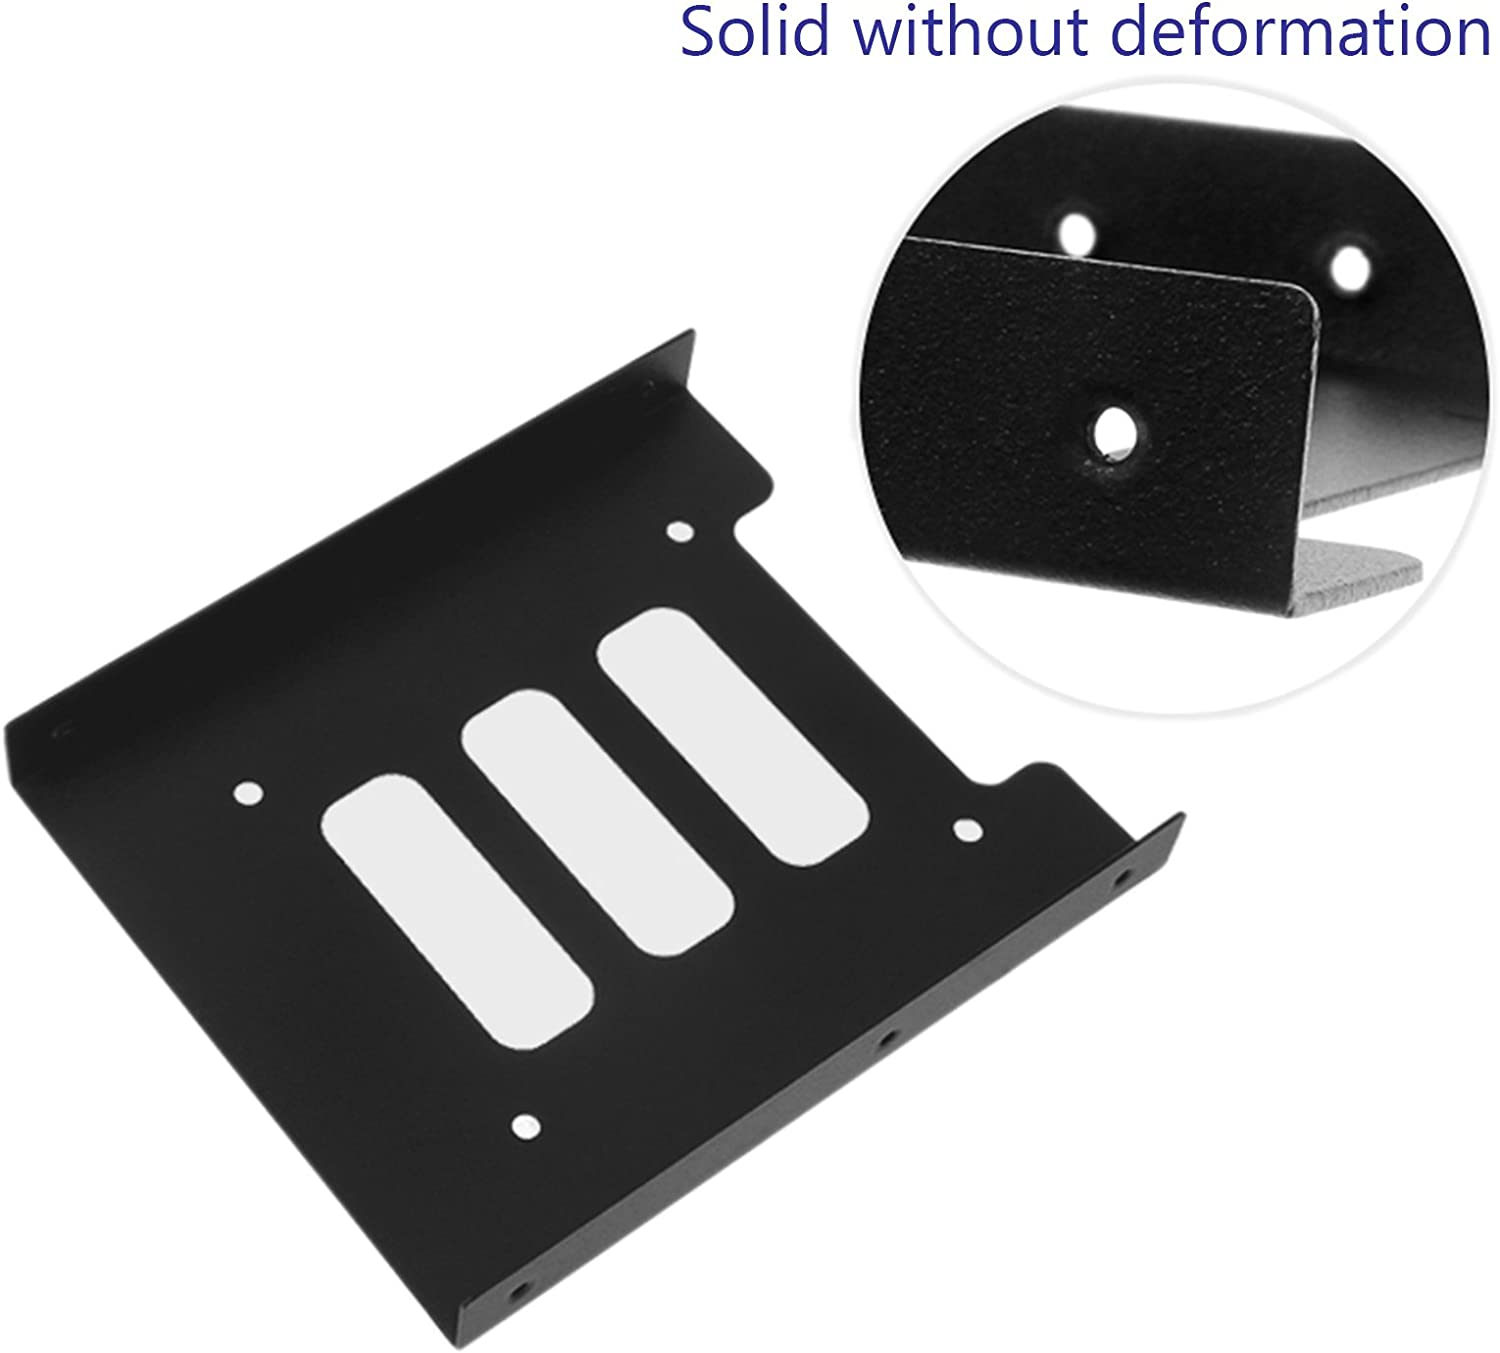 2.5 inch SSD HDD to 3.5 inch Metal Mounting Adapter Bracket Hard Drive Holder with 1 pcs 18 Inch SATA III 6.0 Gbps Cable LiuTian SSD Tray